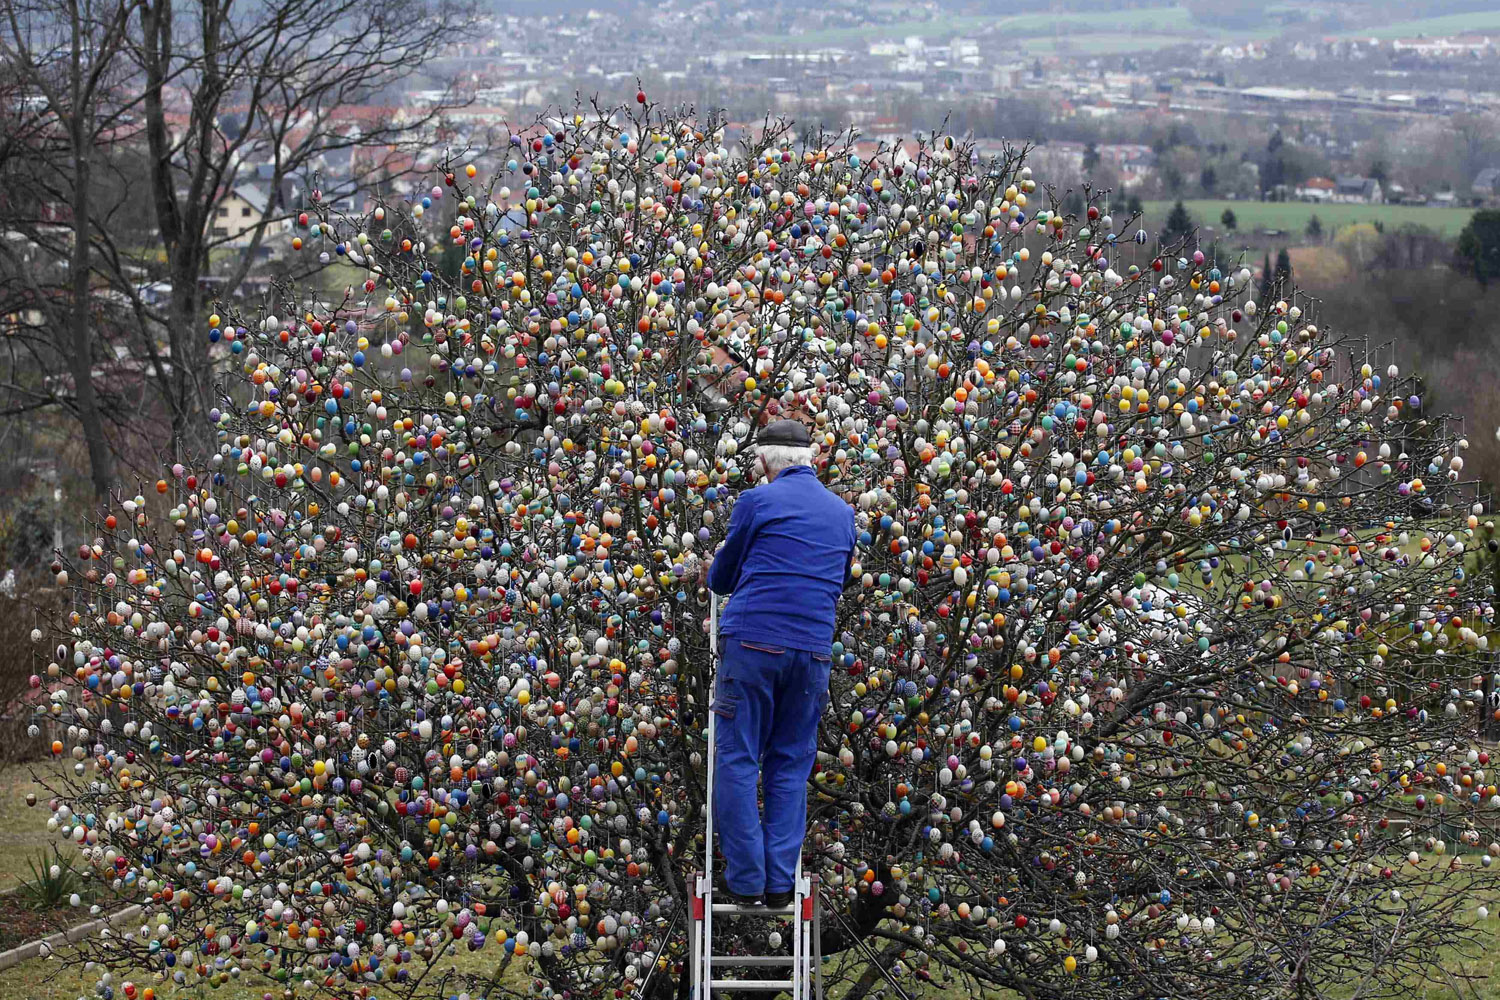 Mar 19, 2014. German pensioner Volker Kraft uses a step ladder as he decorates an apple tree with Easter eggs in the garden of his summerhouse in the eastern German town of Saalfeld.